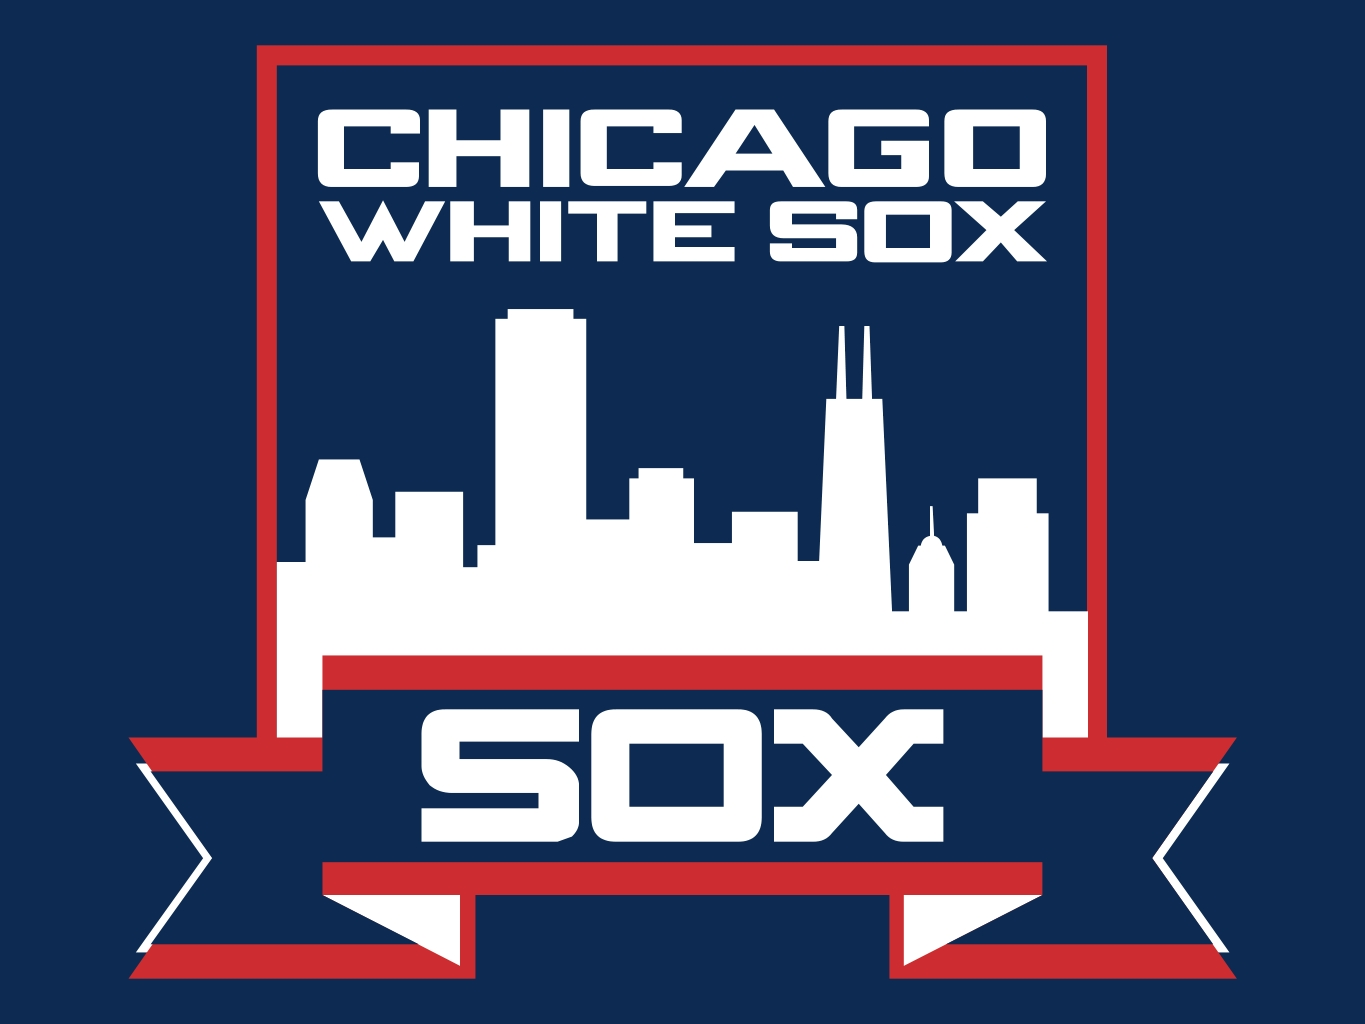 Collection of Chicago White Sox Wallpaper on HDWallpapers.